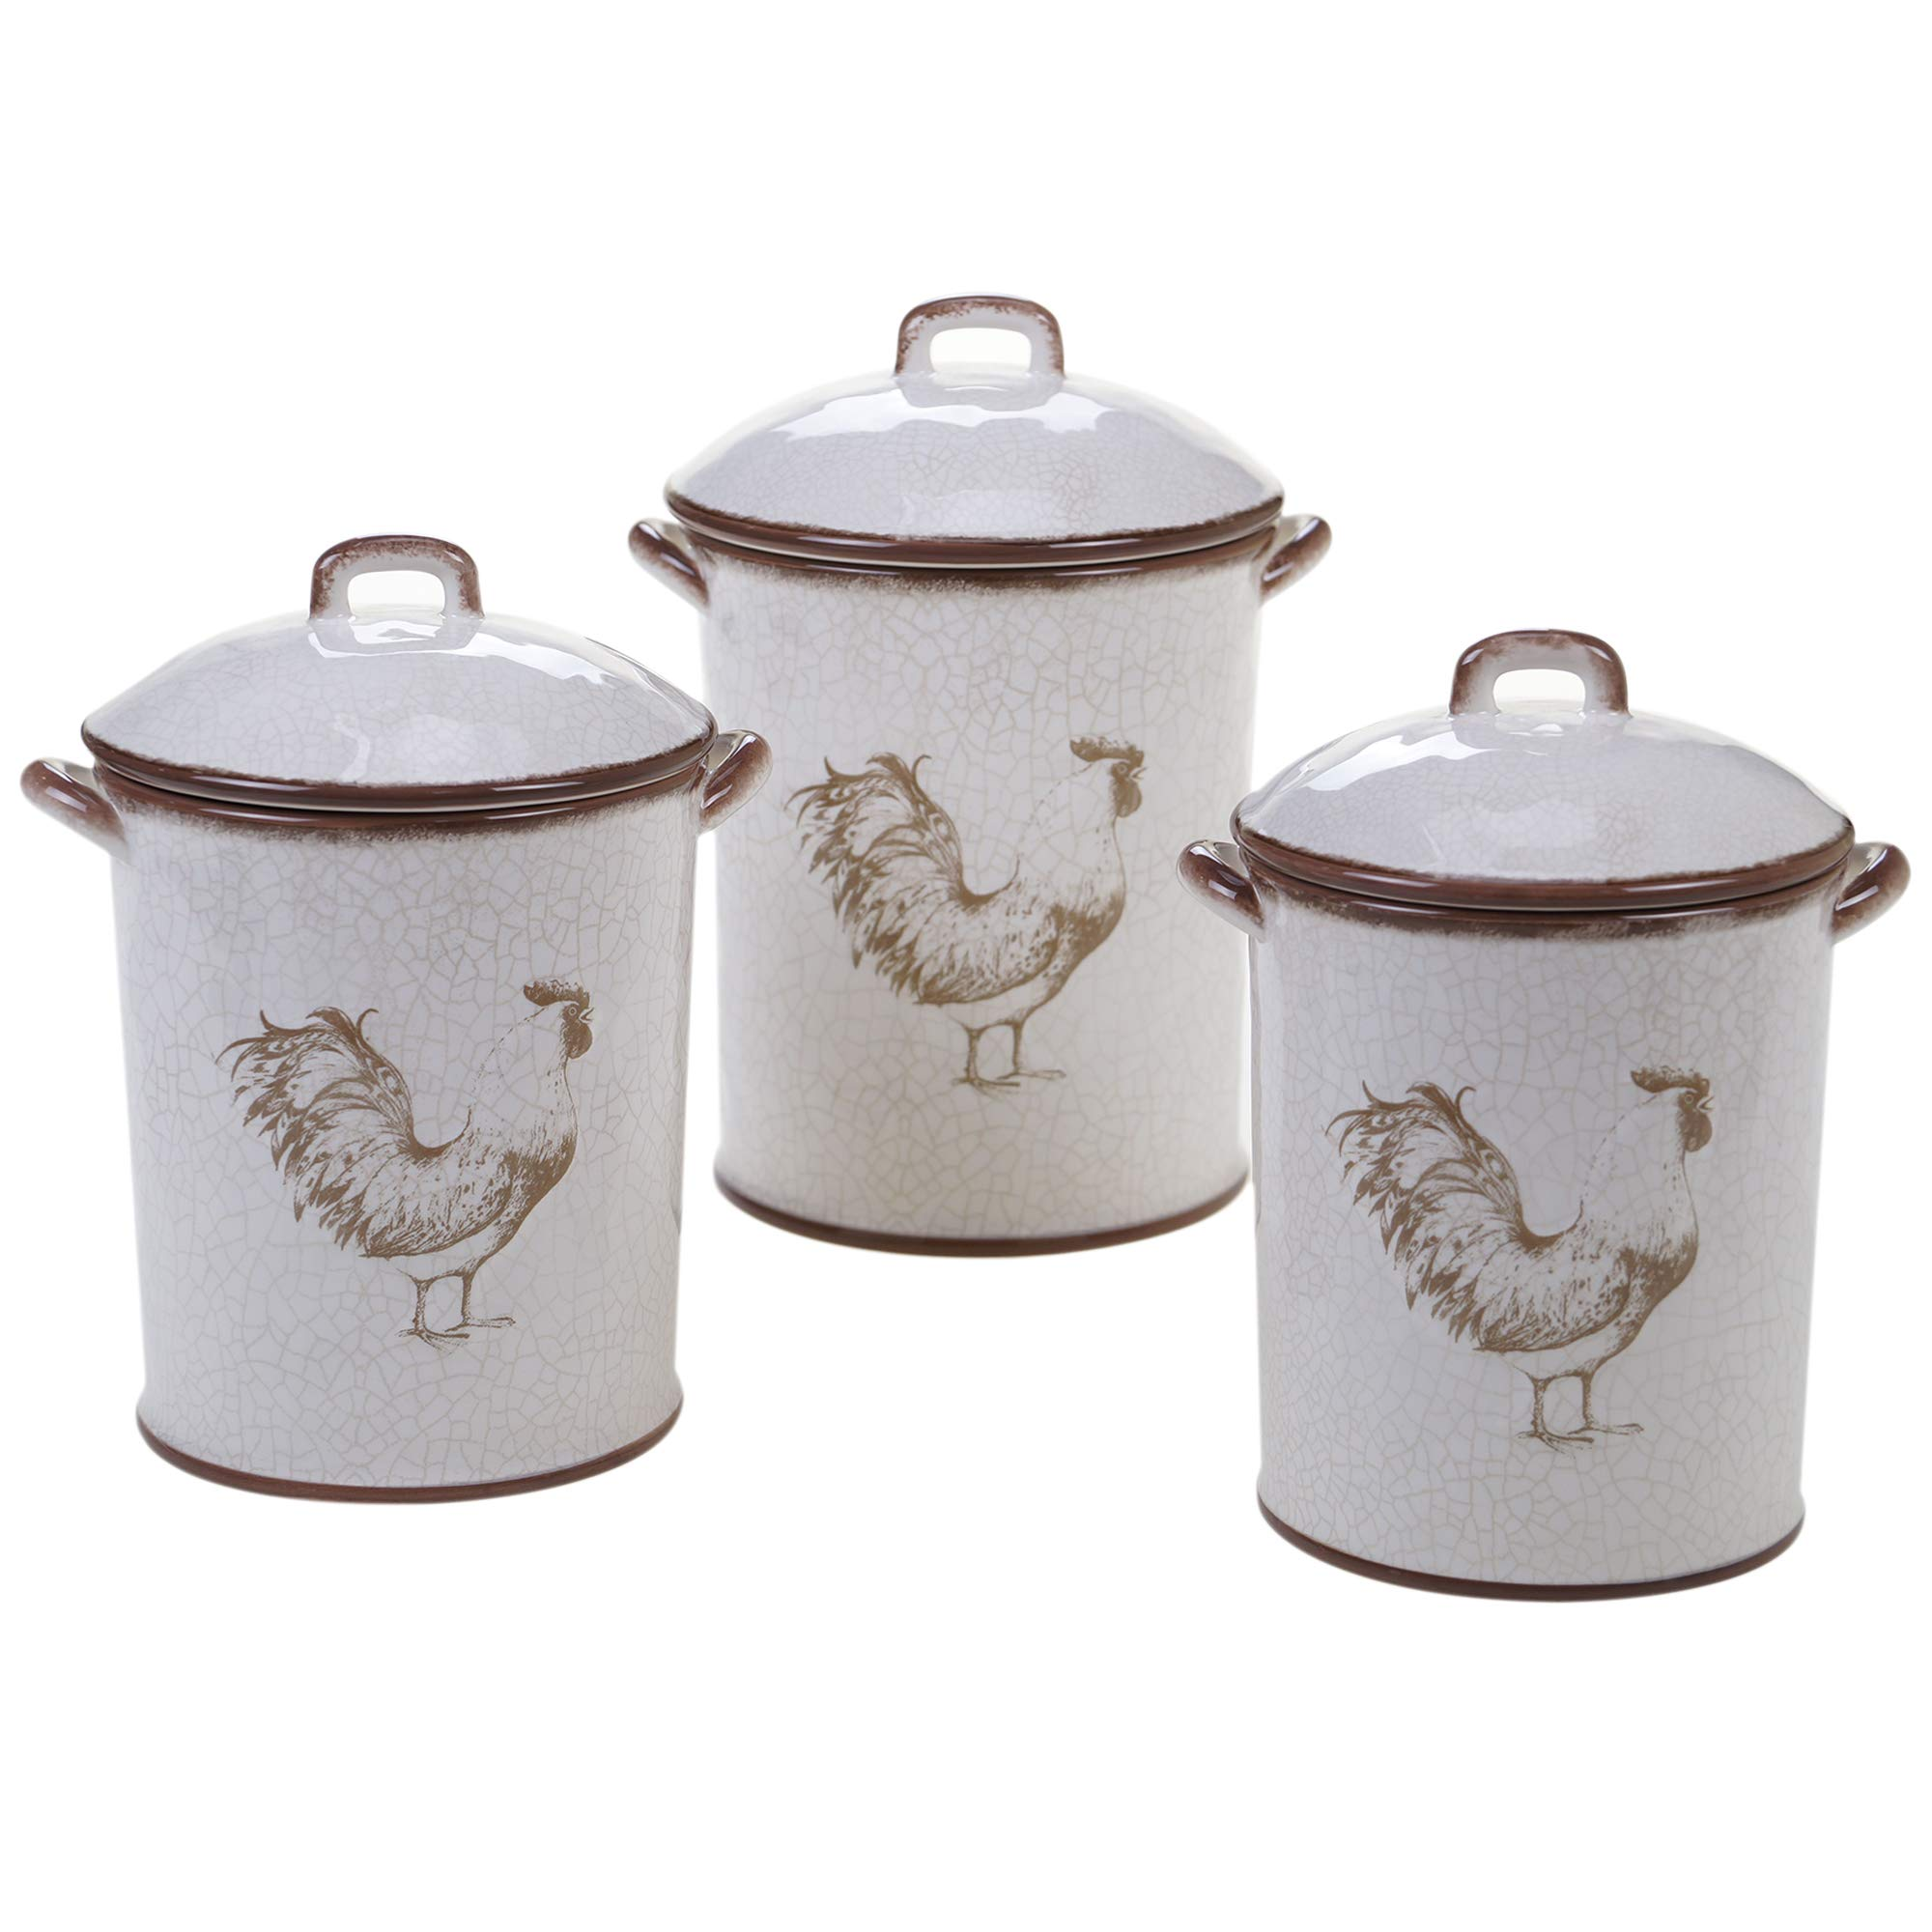 Certified International Toile Rooster 3 pc. Canister Set ,One Size, Multicolored